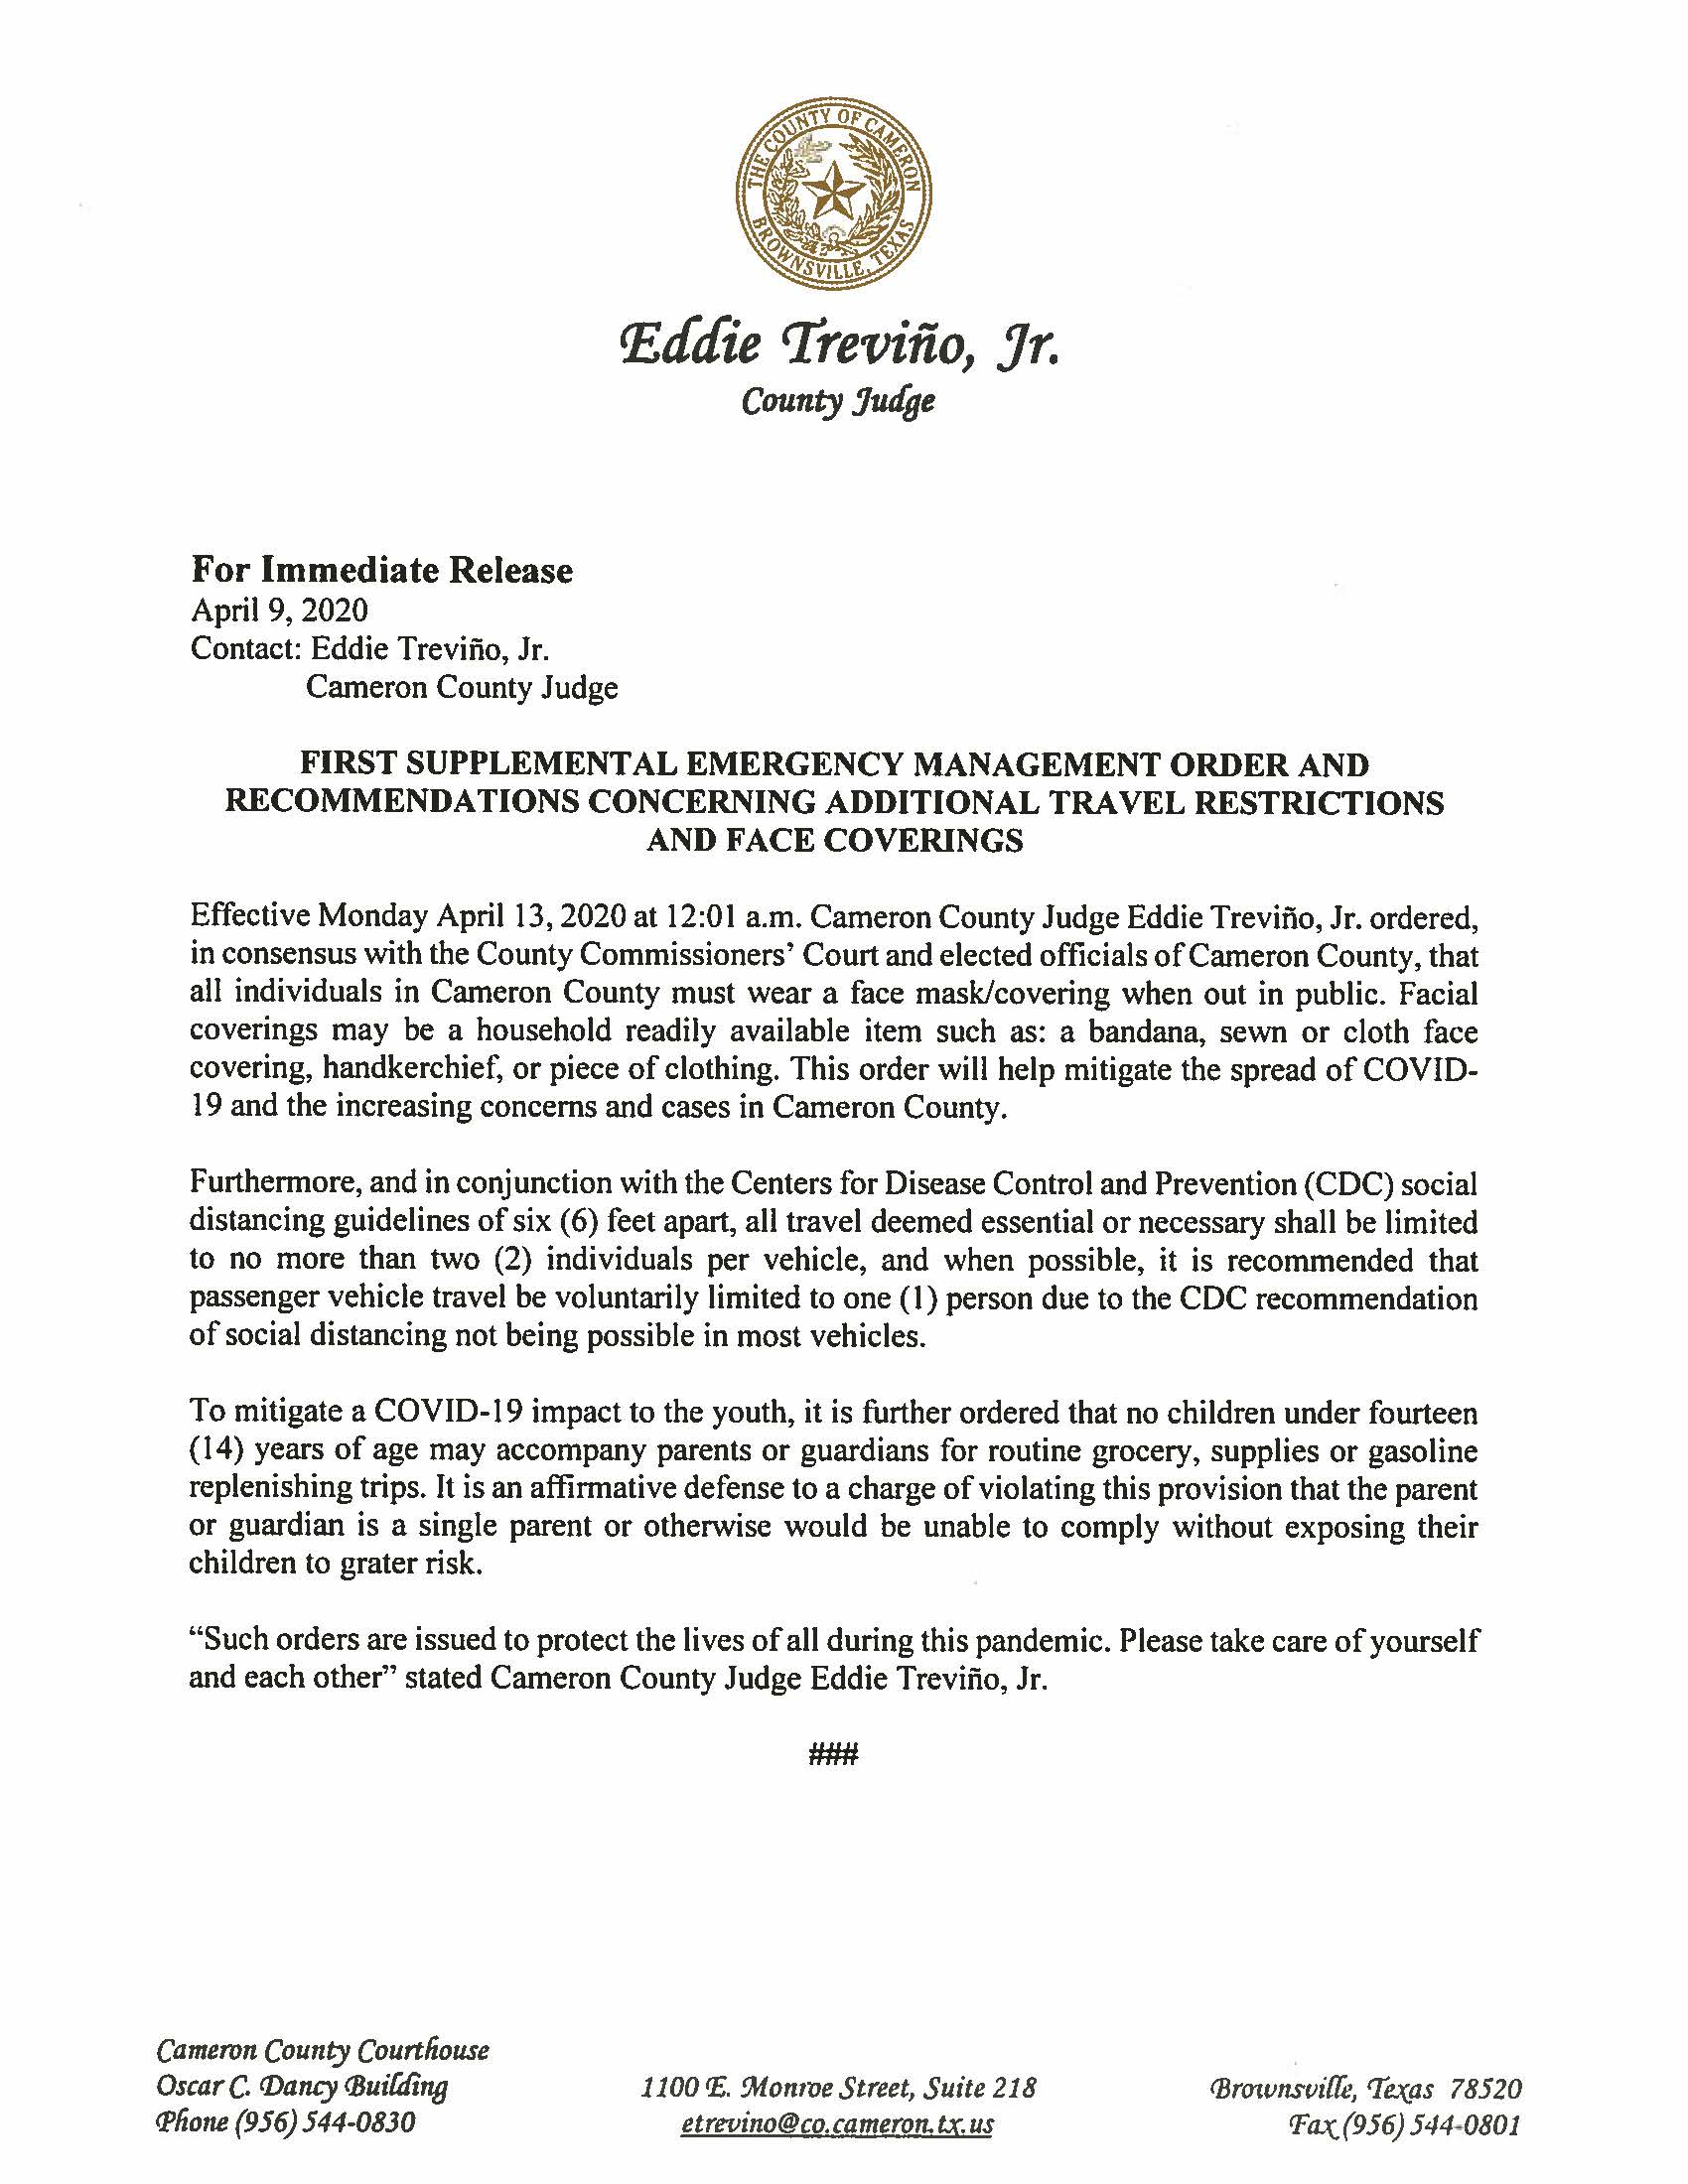 04.09.2020 For Immediate Release First Supplemental Emergency Management Order And Recommendations Concerning Travel And Face Coverings